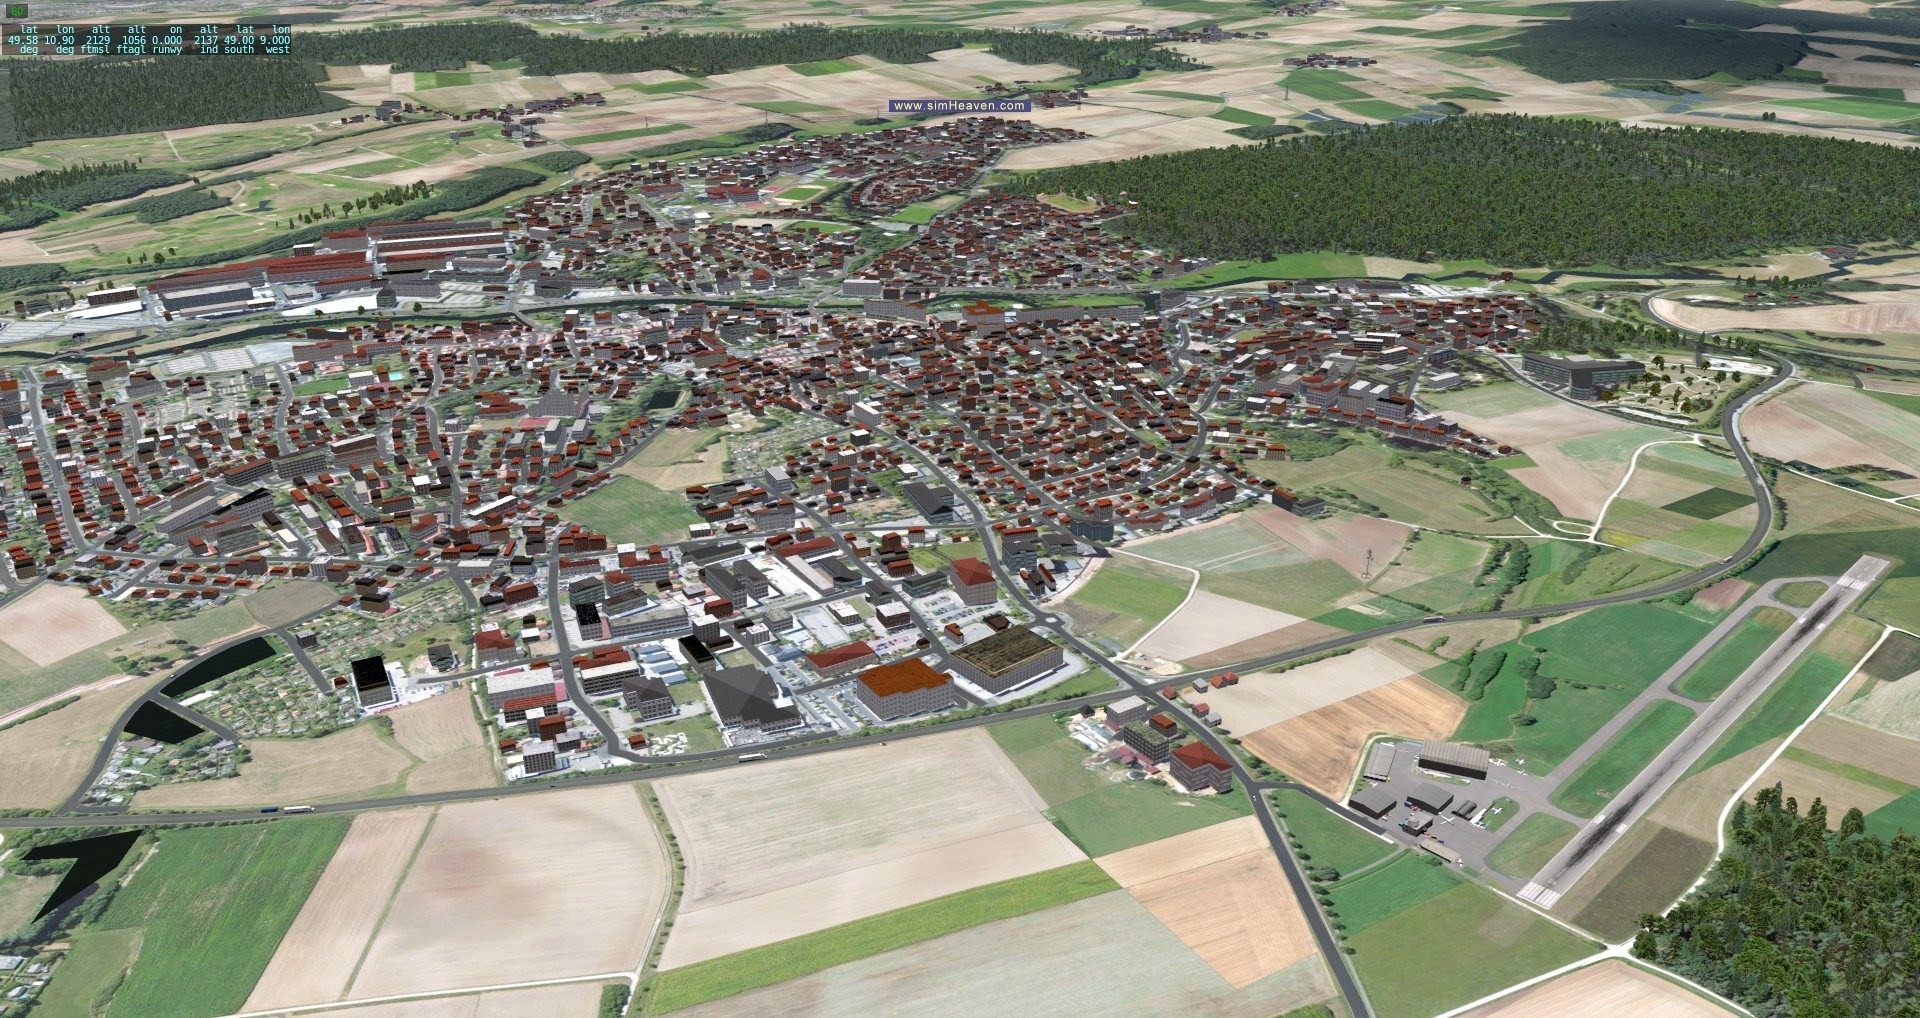 well, not the biggest city in Germany, but my home airport, near Nuremberg ;)